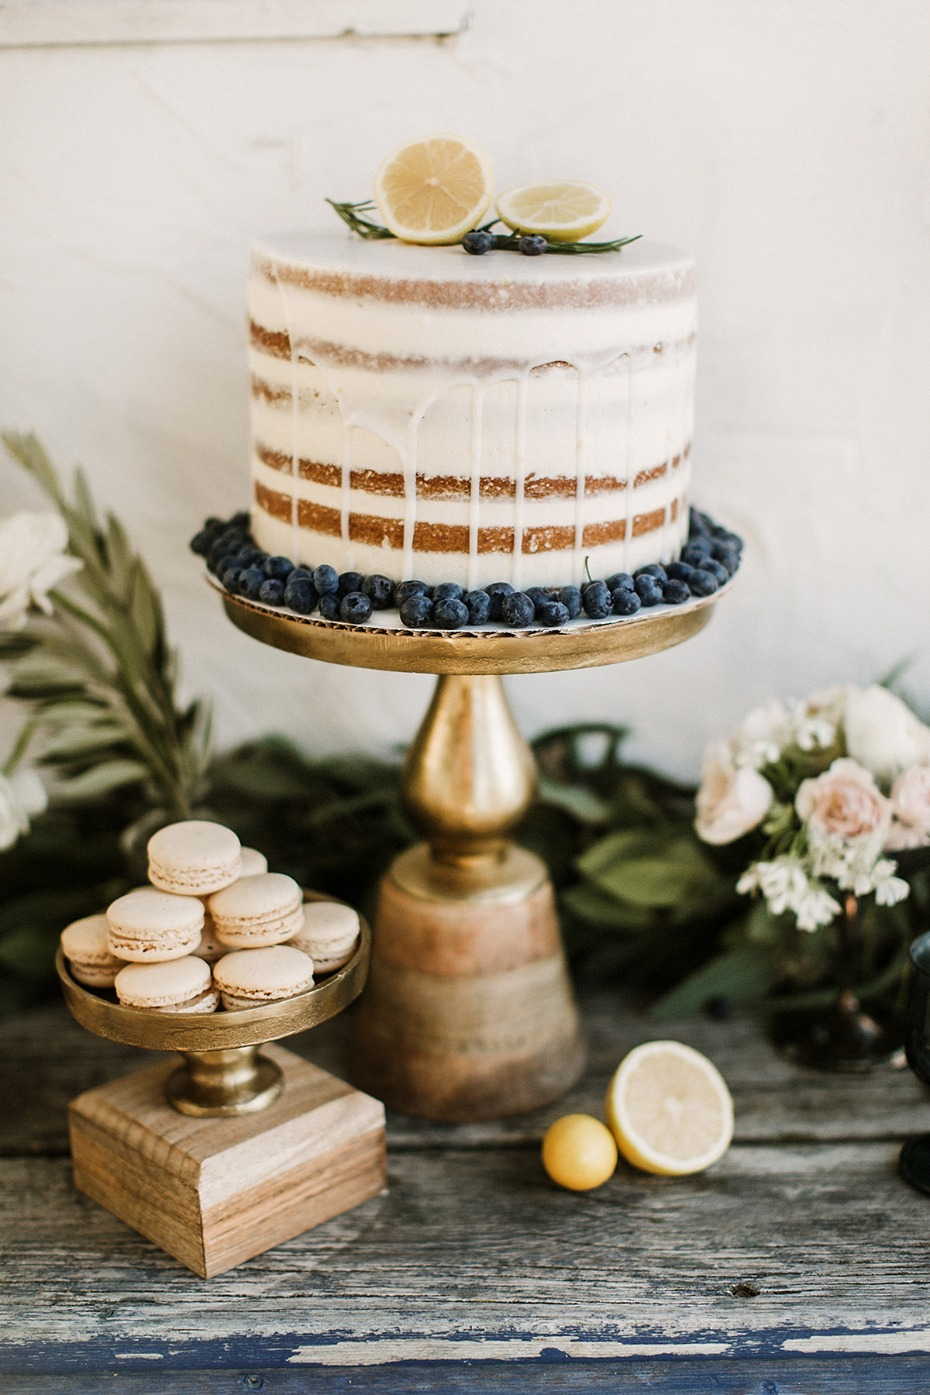 drizzle wedding cake topped with lemons